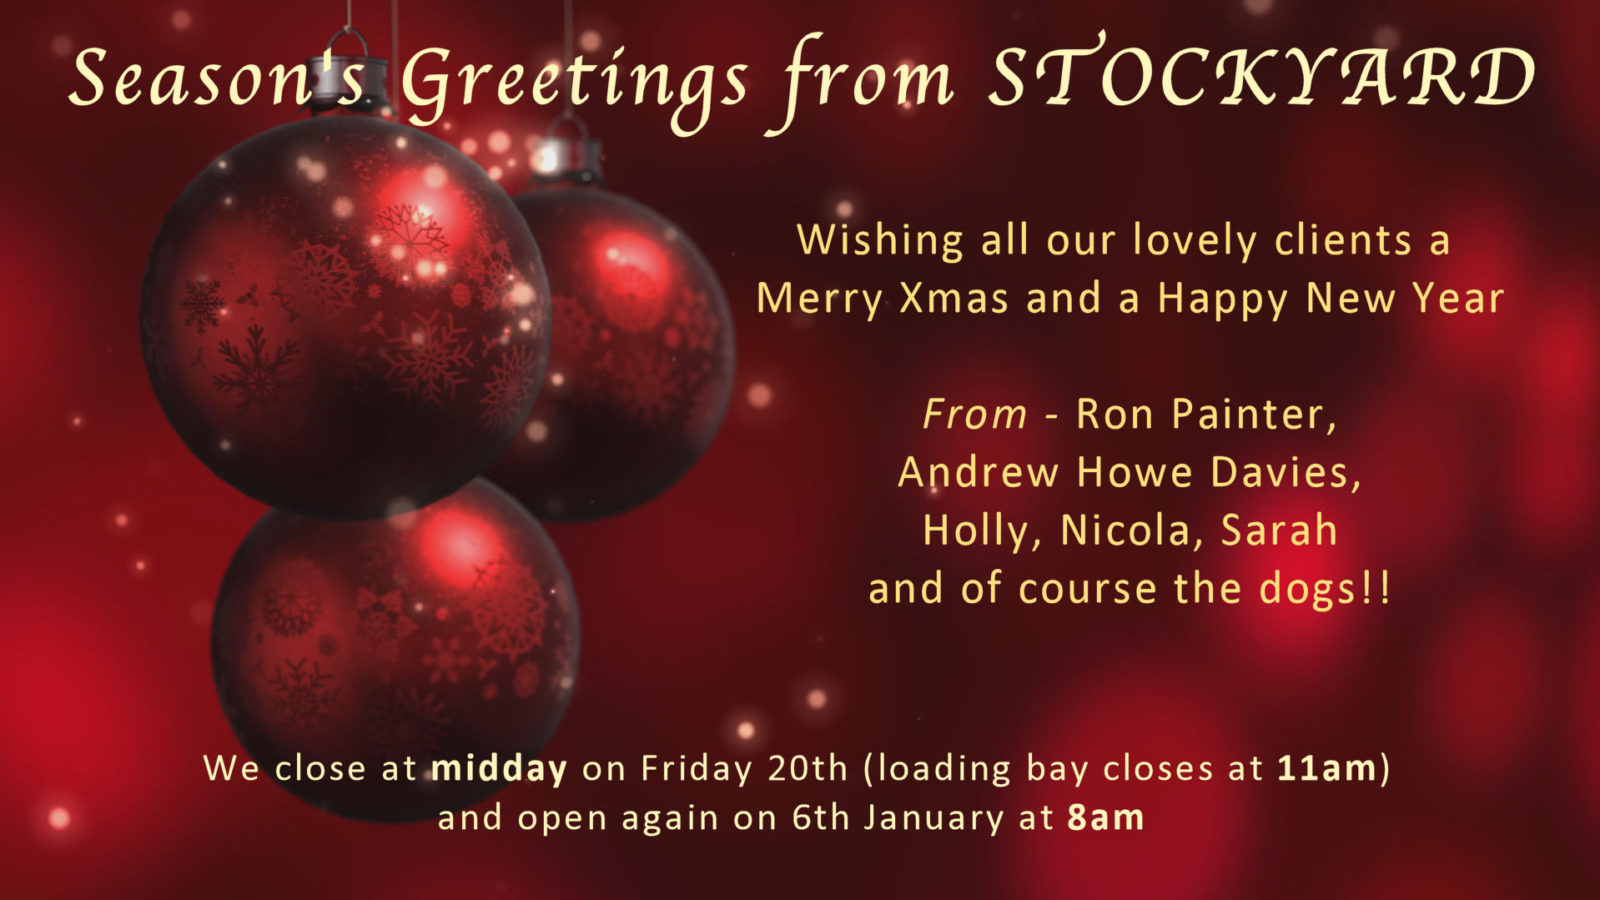 Wishing all our lovely clients a Merry Xmas and a Happy New Year From - Ron Painter, Andrew Howe Davies, Holly, Nicola, Sarah and of course the dogs!! We close at midday on Friday 20th (loading bay closes at 11am) and open again on 6th January at 8am